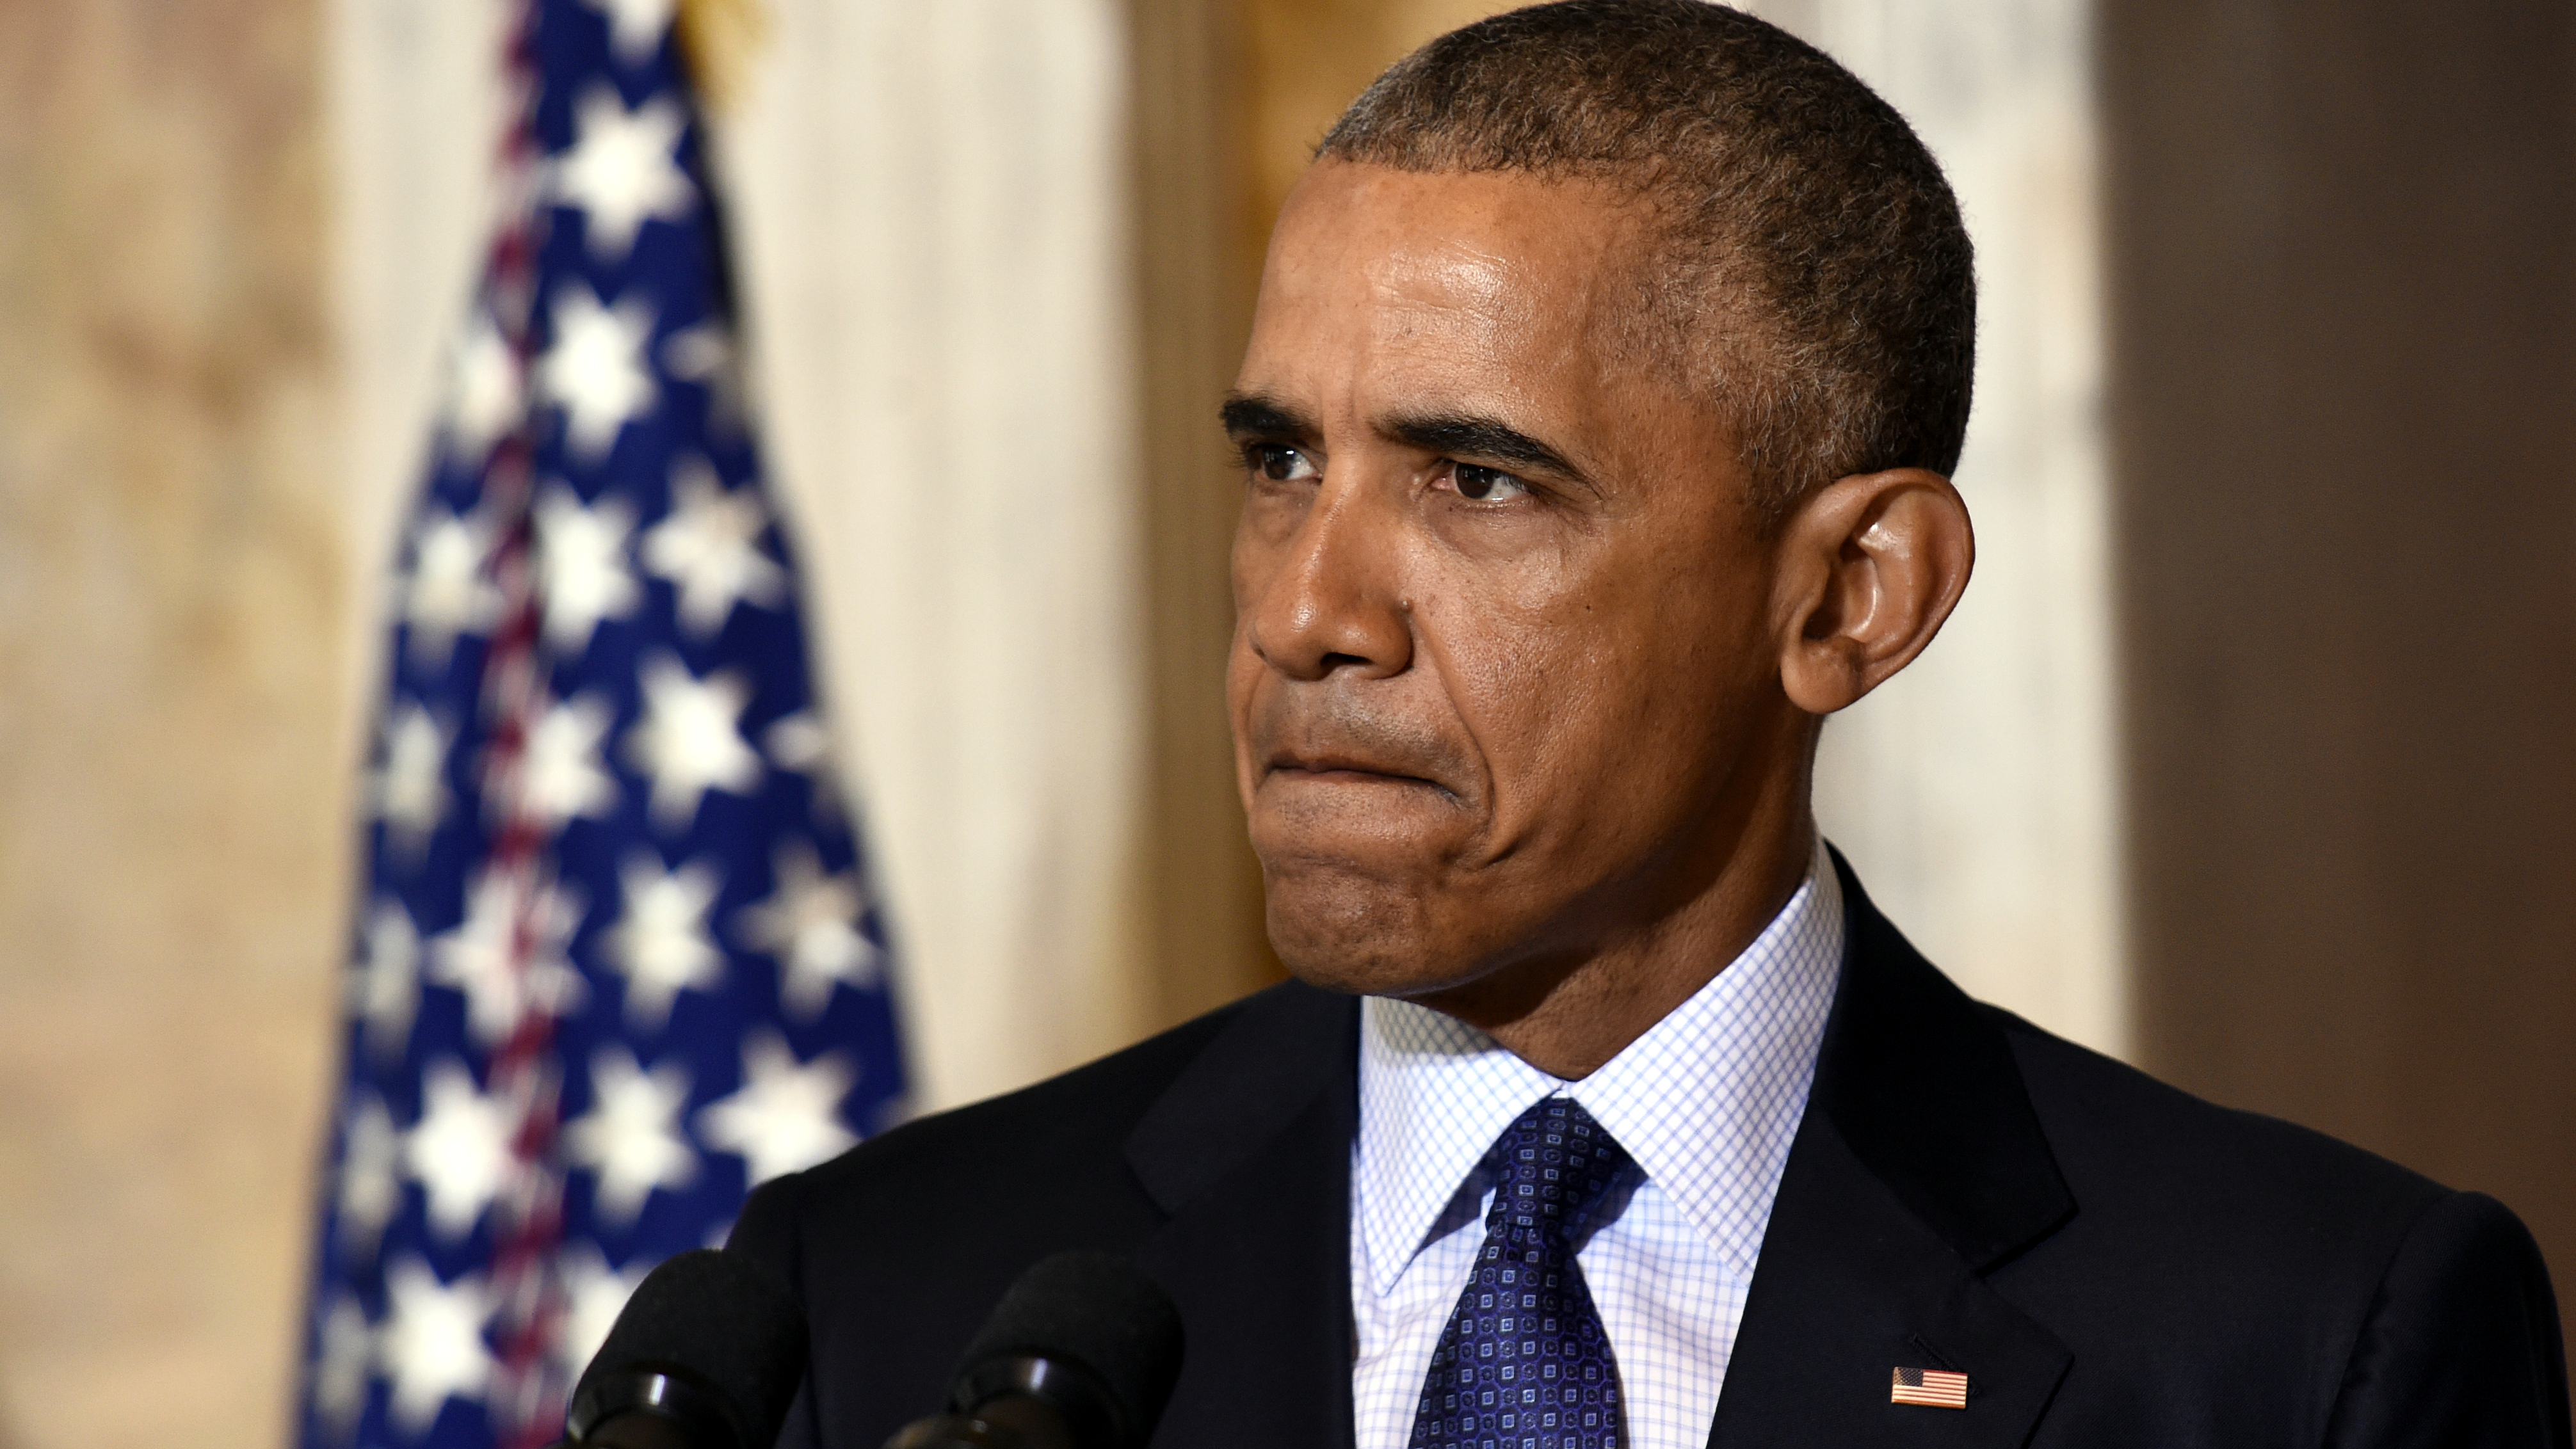 President Barack Obama speaks after meeting with his National Security Council at the Treasury Department in Washington, Tuesday, June 14, 2016, to get updates on the investigation into the attack in Orlando, Florida and review efforts to degrade and destroy ISIL.